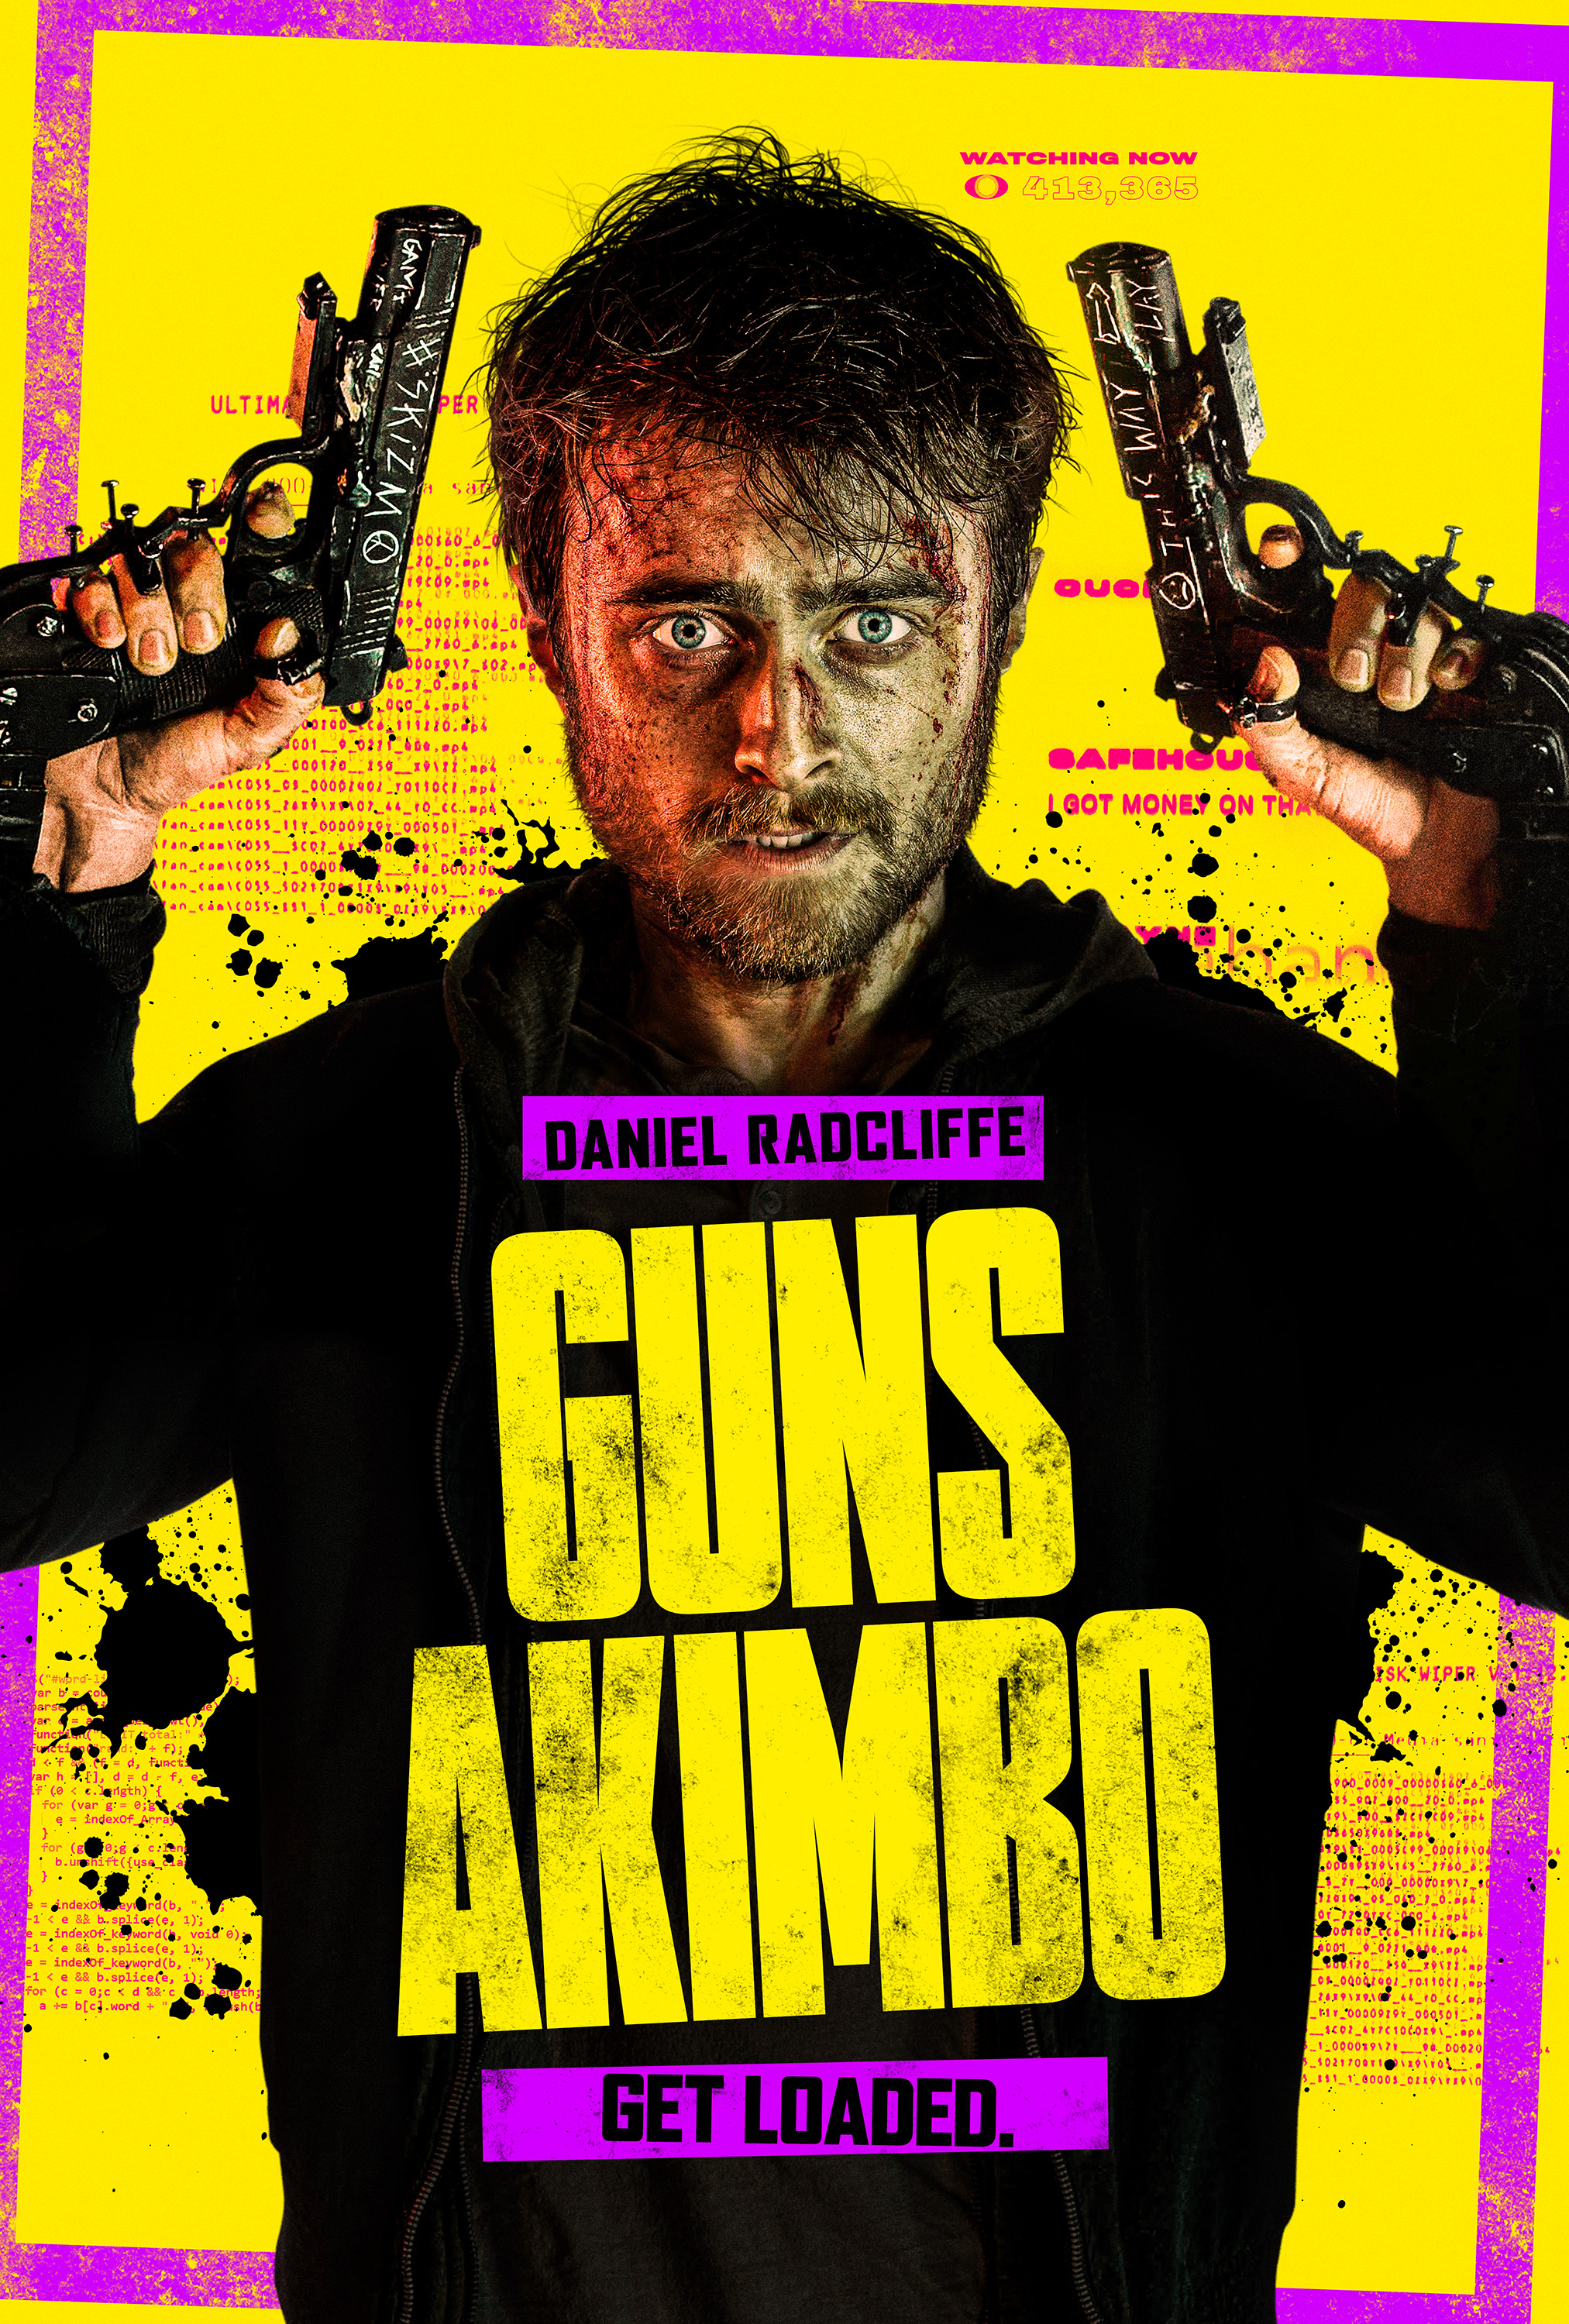 Potterish.com [Year 18] :: Harry Potter, Cursed Child, Fantastic Beasts, JK Rowling, Daniel, Emma & Rupert Daniel Radcliffe fights for his life in the trailer of Guns Akimbo, a film about gangues